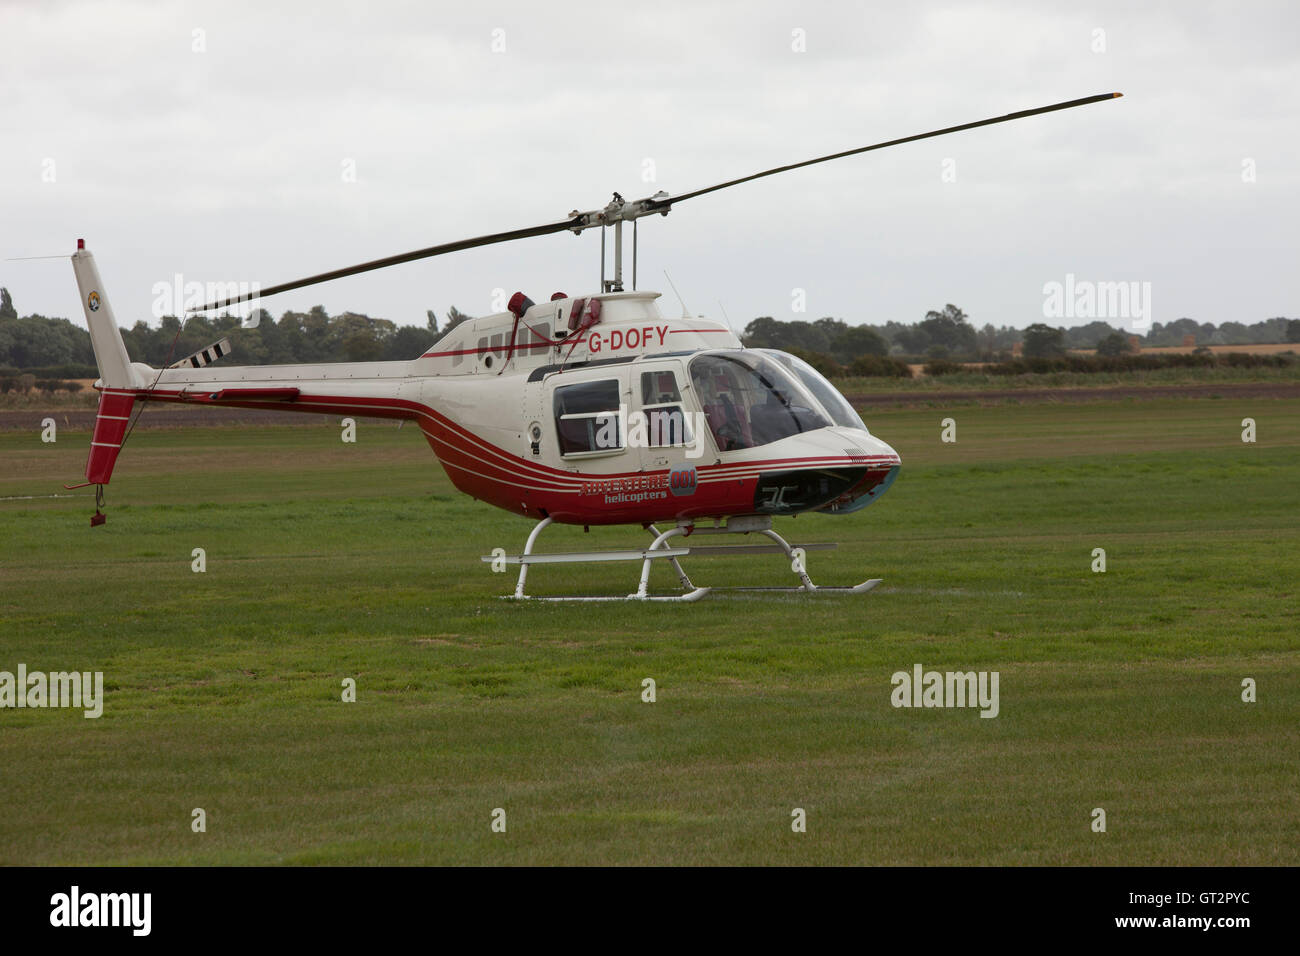 Red And White Helicopter Stock Photos & Red And White Helicopter